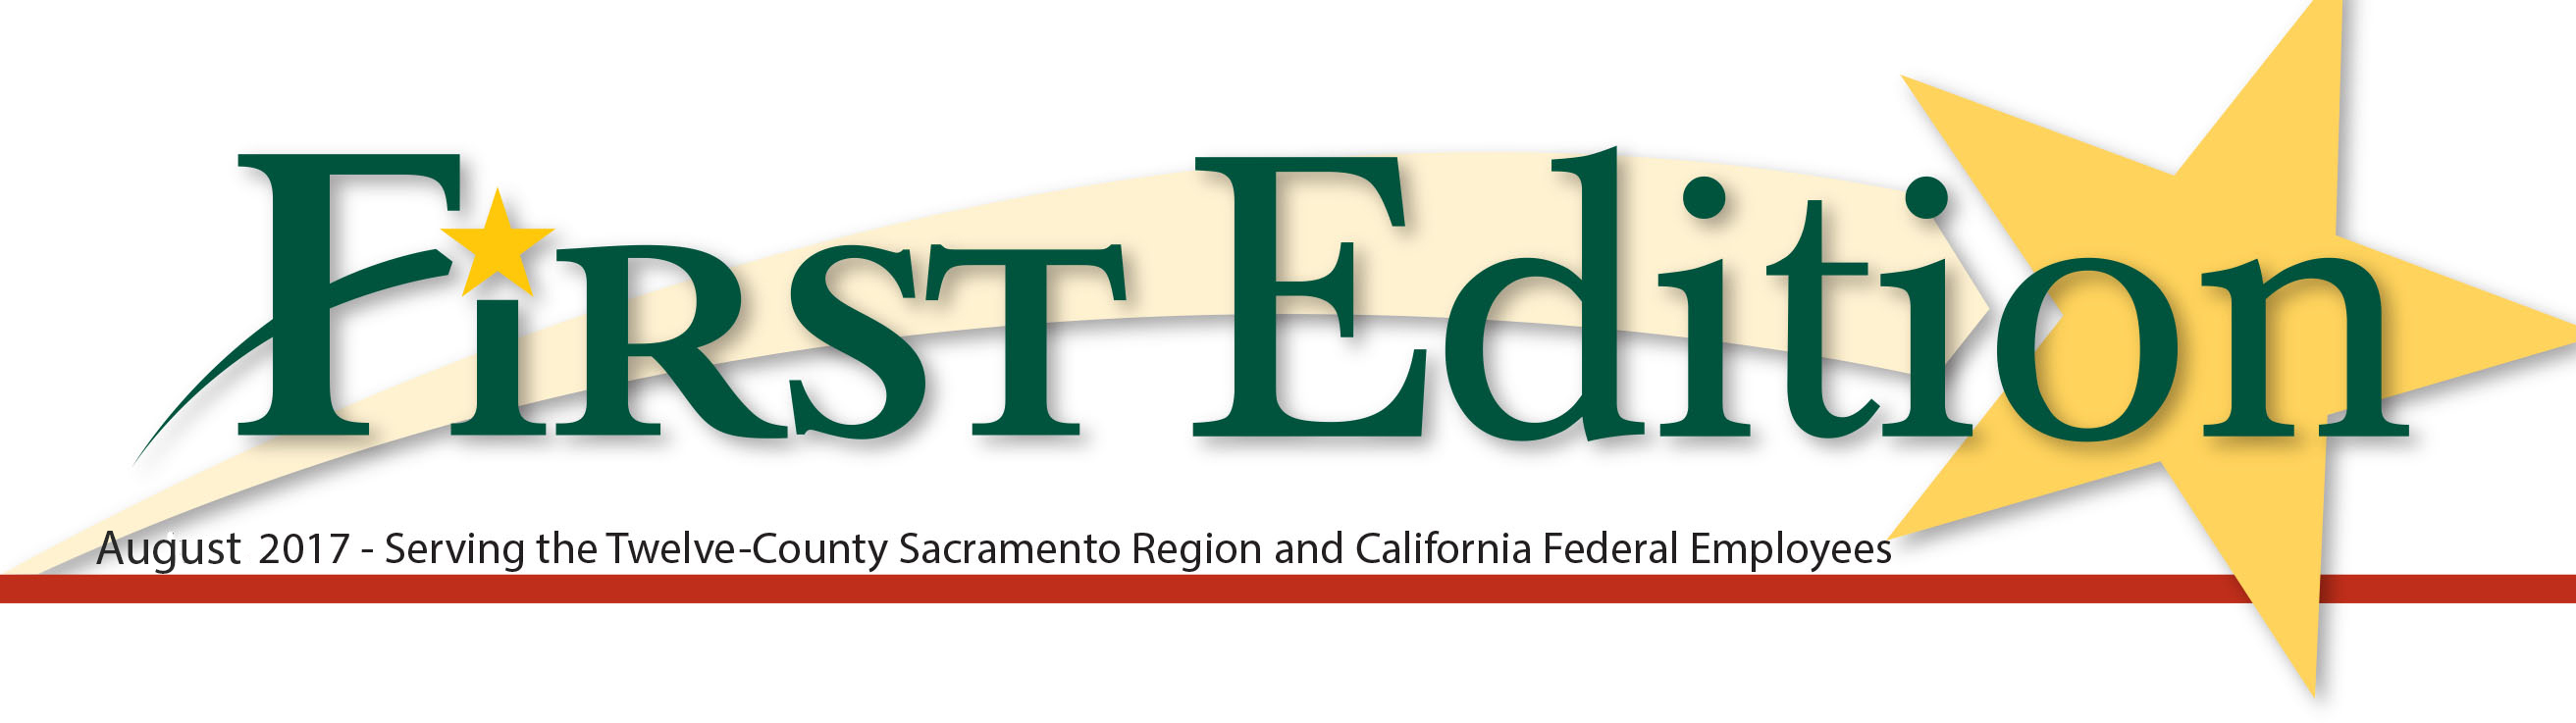 First Edition banner - August 2017 - Serving the Twelve County Sacramento Region and California Federal Employees